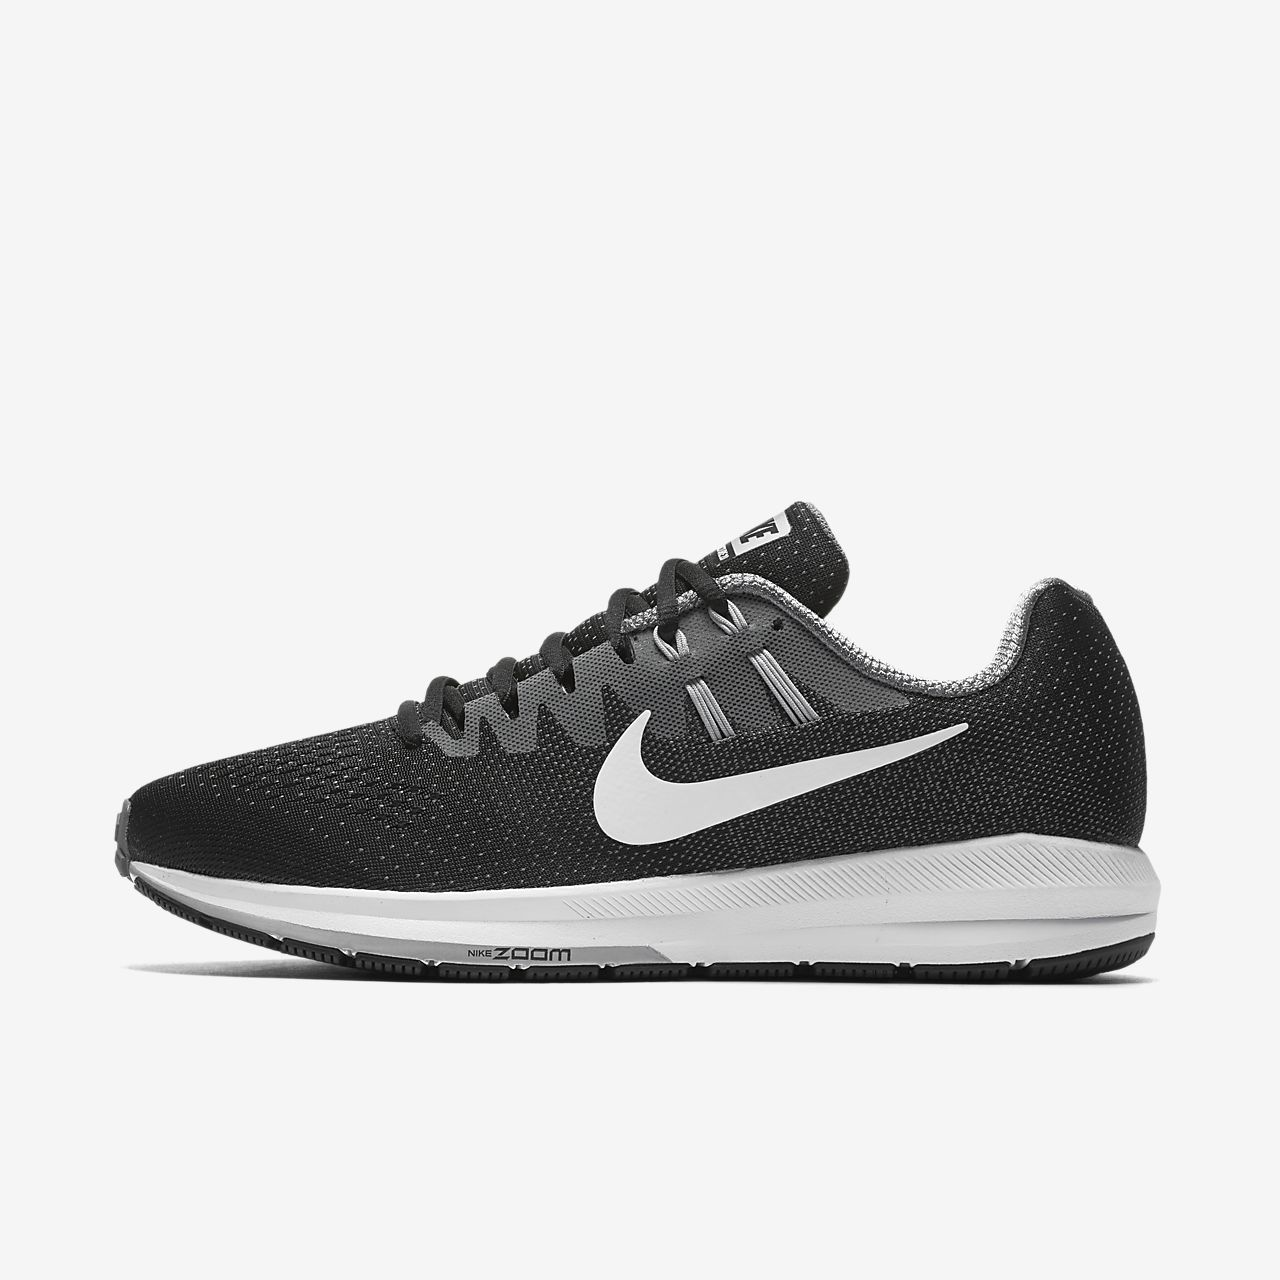 ... Nike Air Zoom Structure 20 Men's Running Shoe